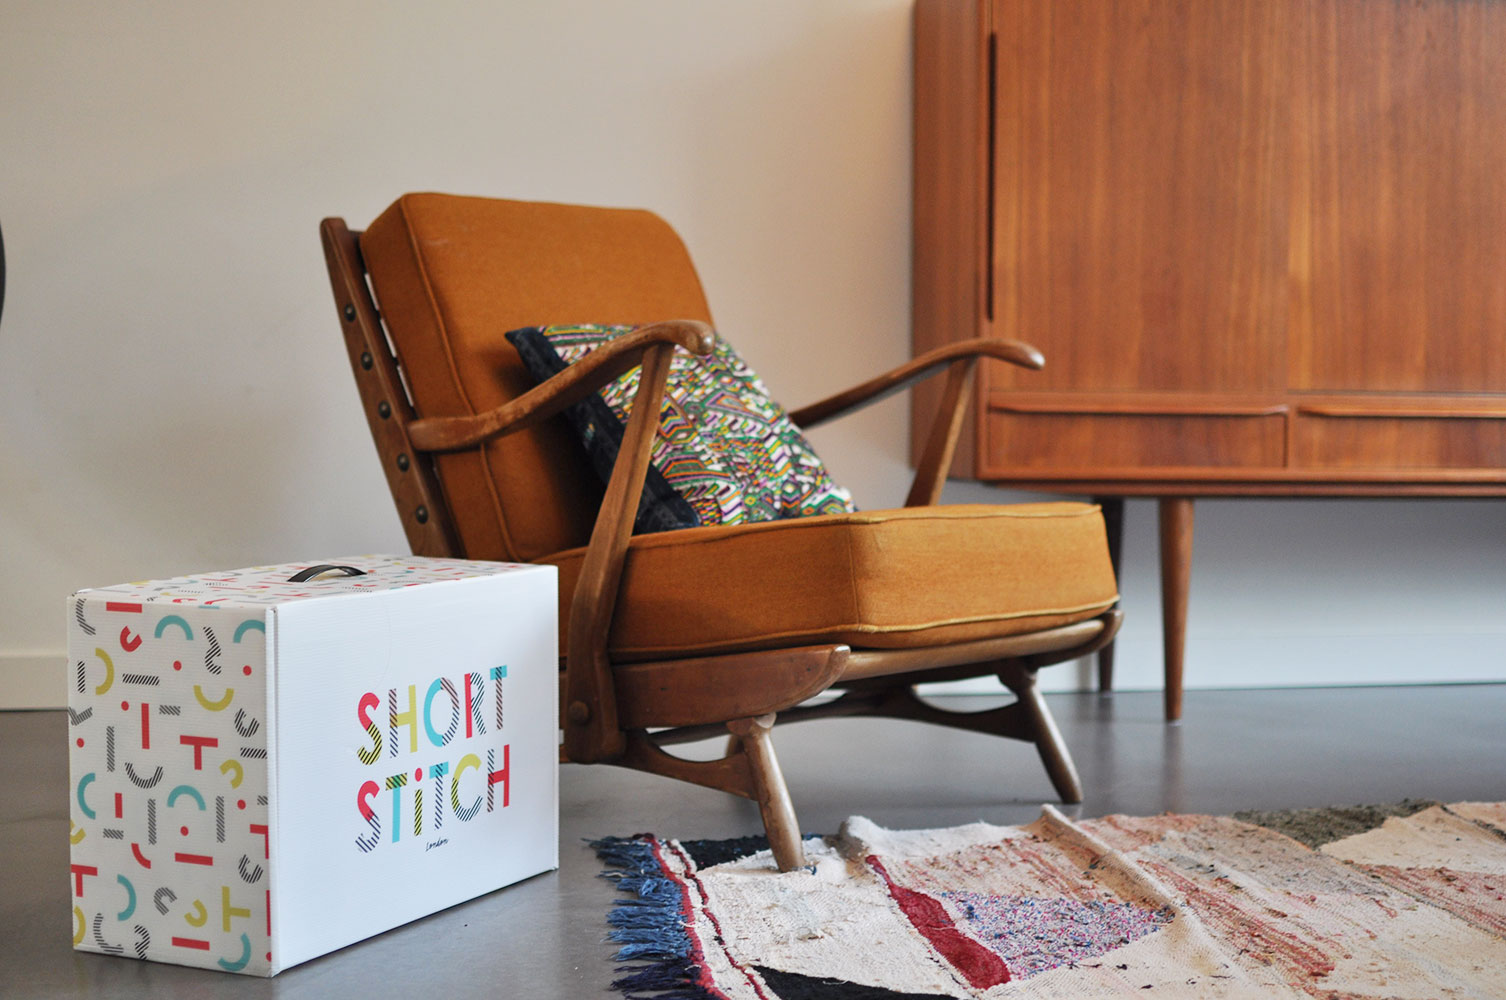 Shortstitch -- personal shopping service